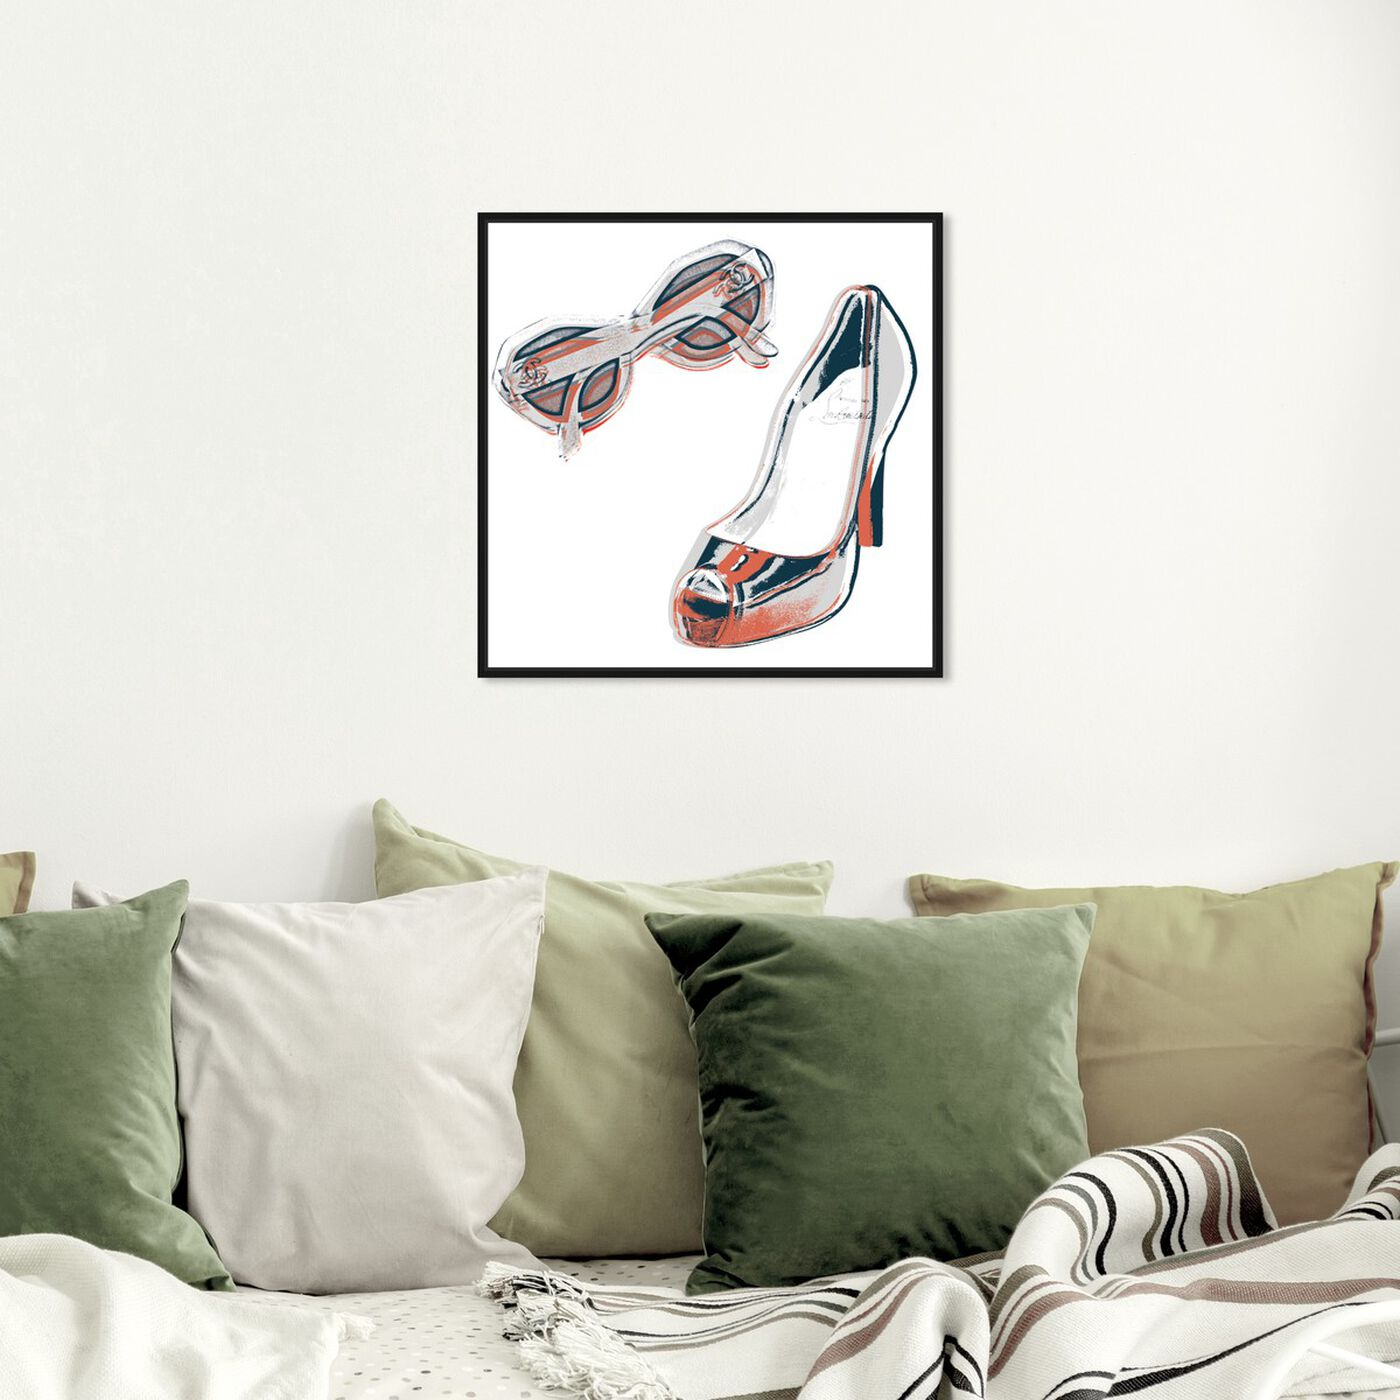 Hanging view of All She Needs featuring fashion and glam and accessories art.